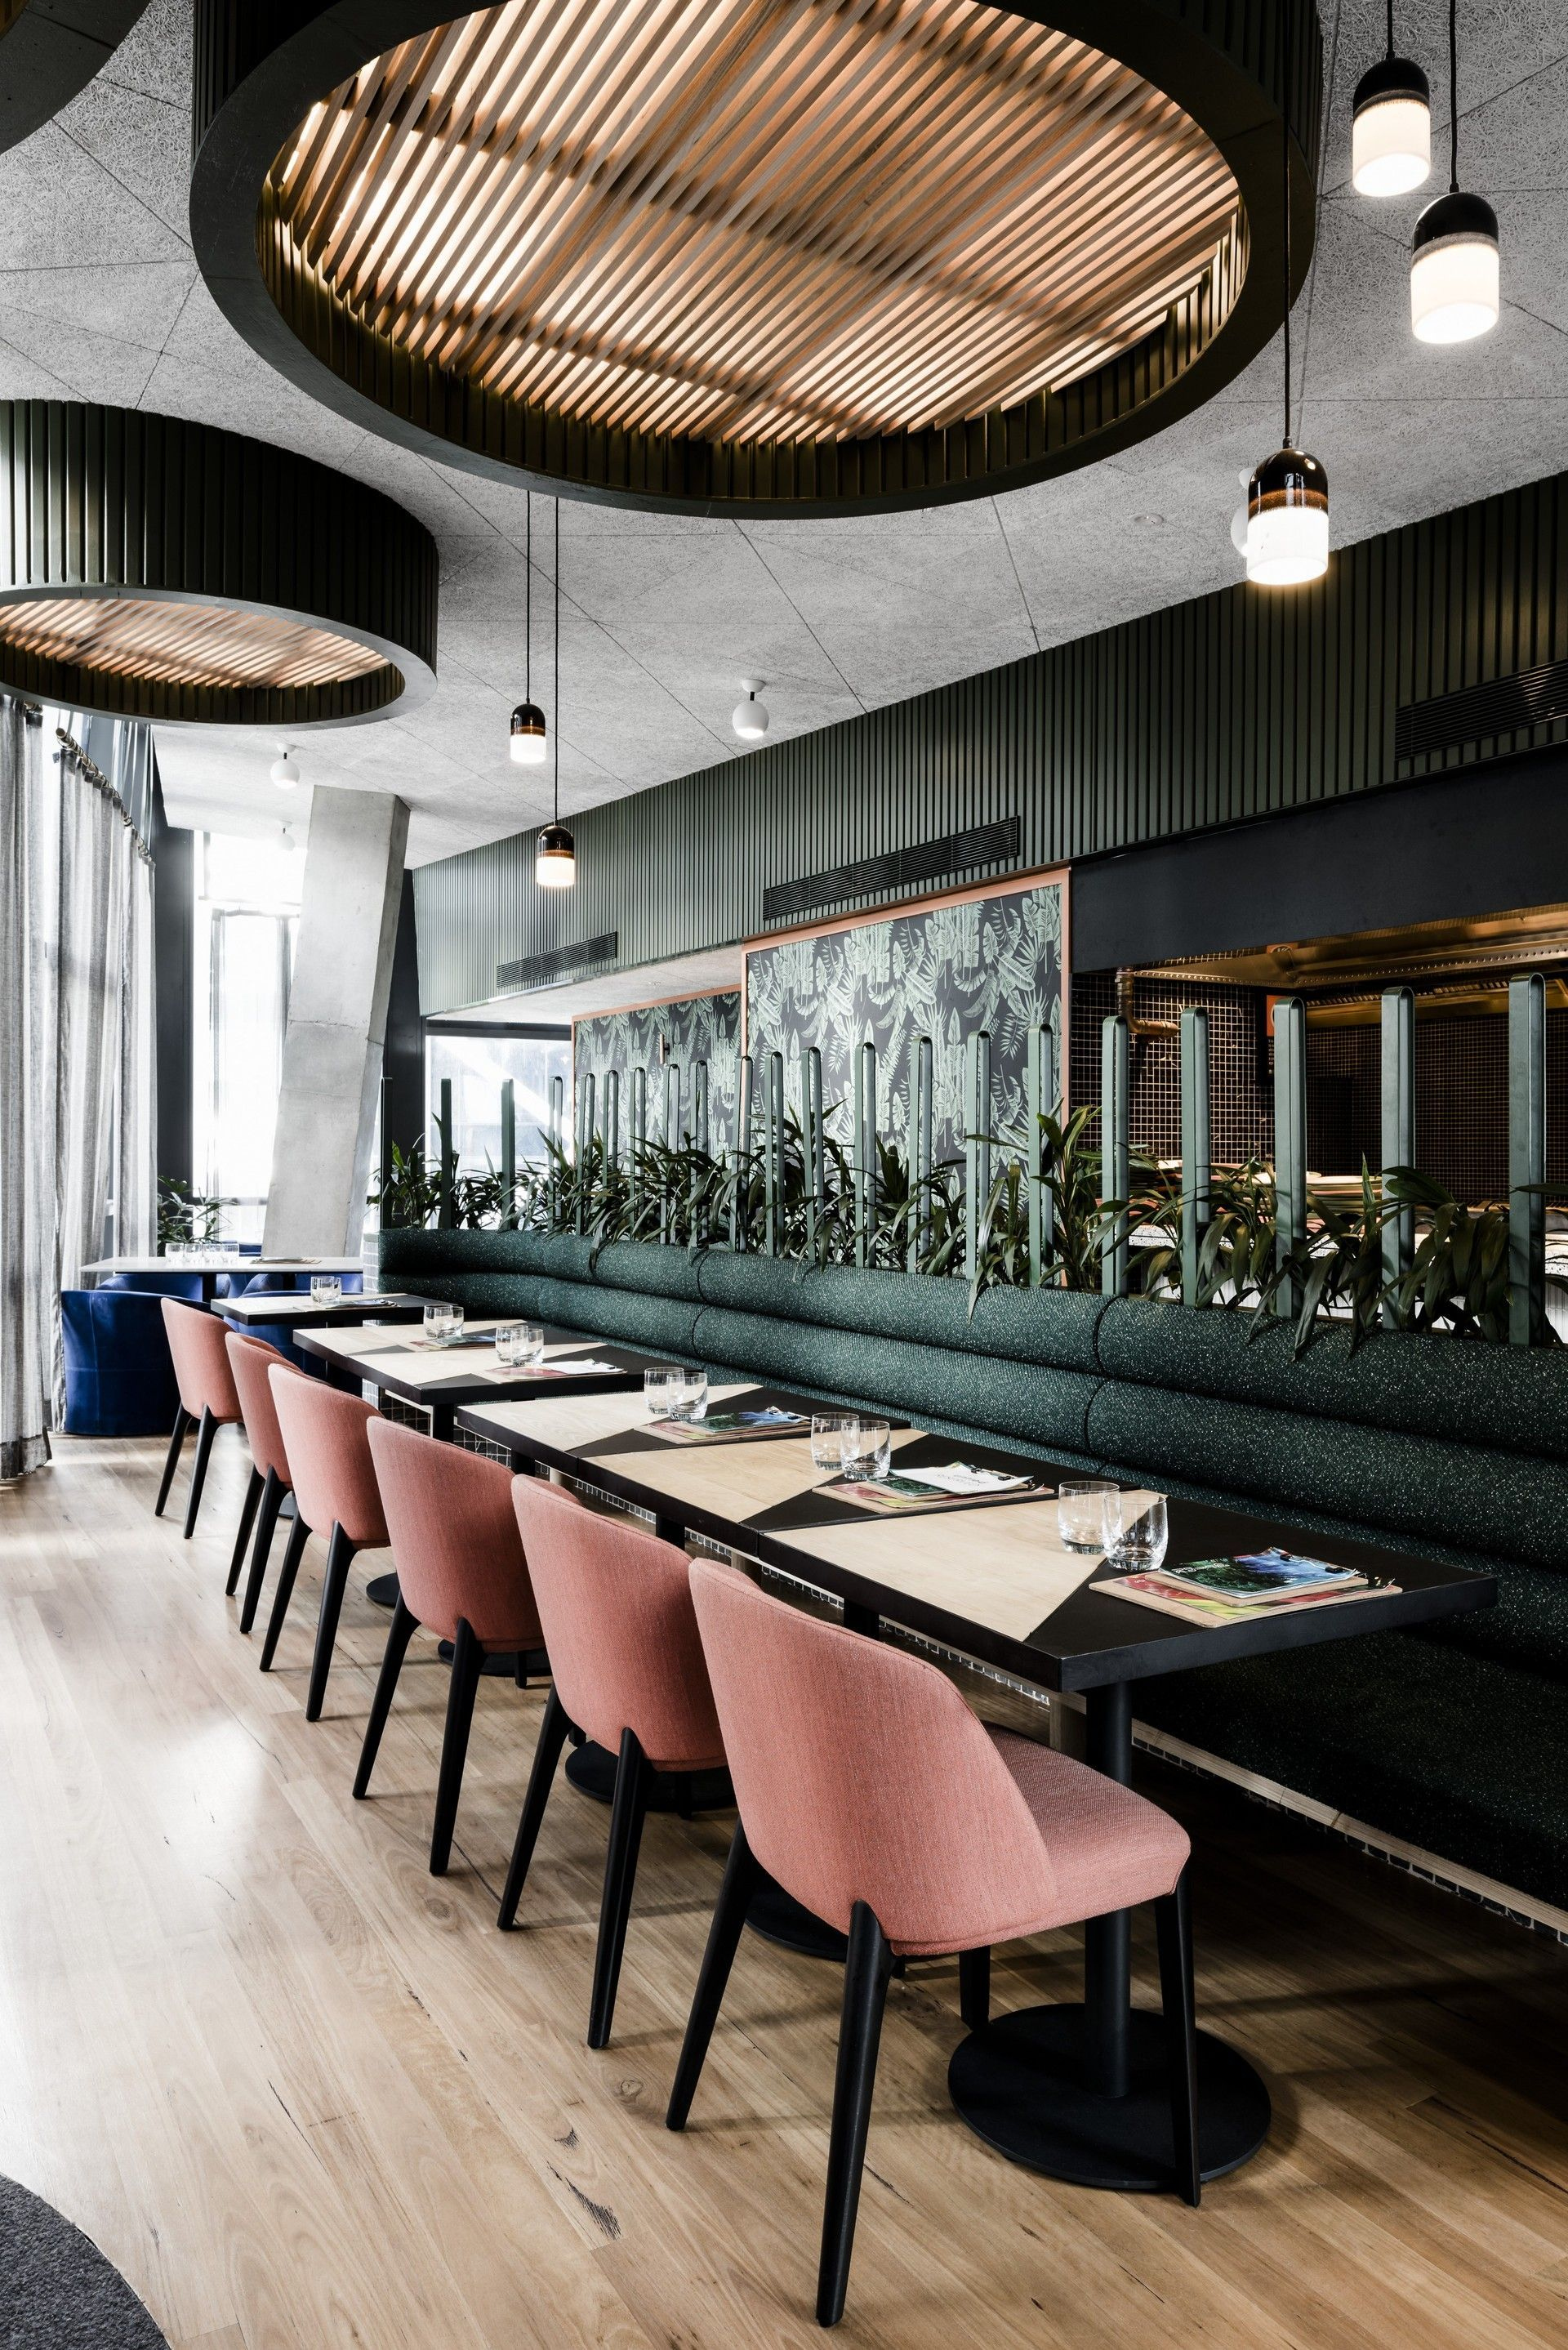 A new rooftop bar for barangaroo captures the spirit of australias tropical north untied a new rooftop eatery in the heart of barangaroos buzzing